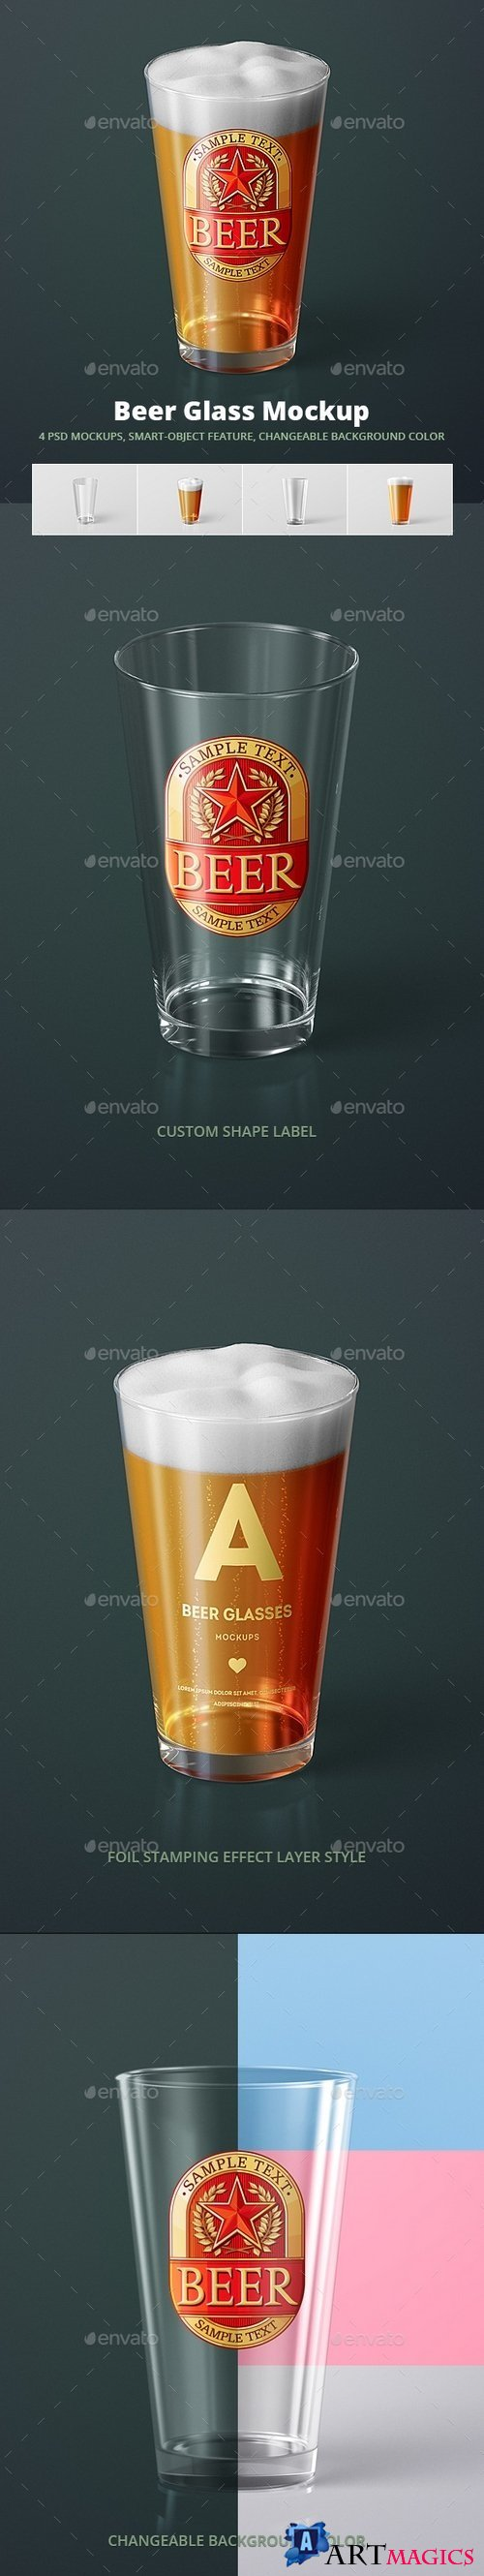 Beer Glass Mock-up - American Pint 21330837